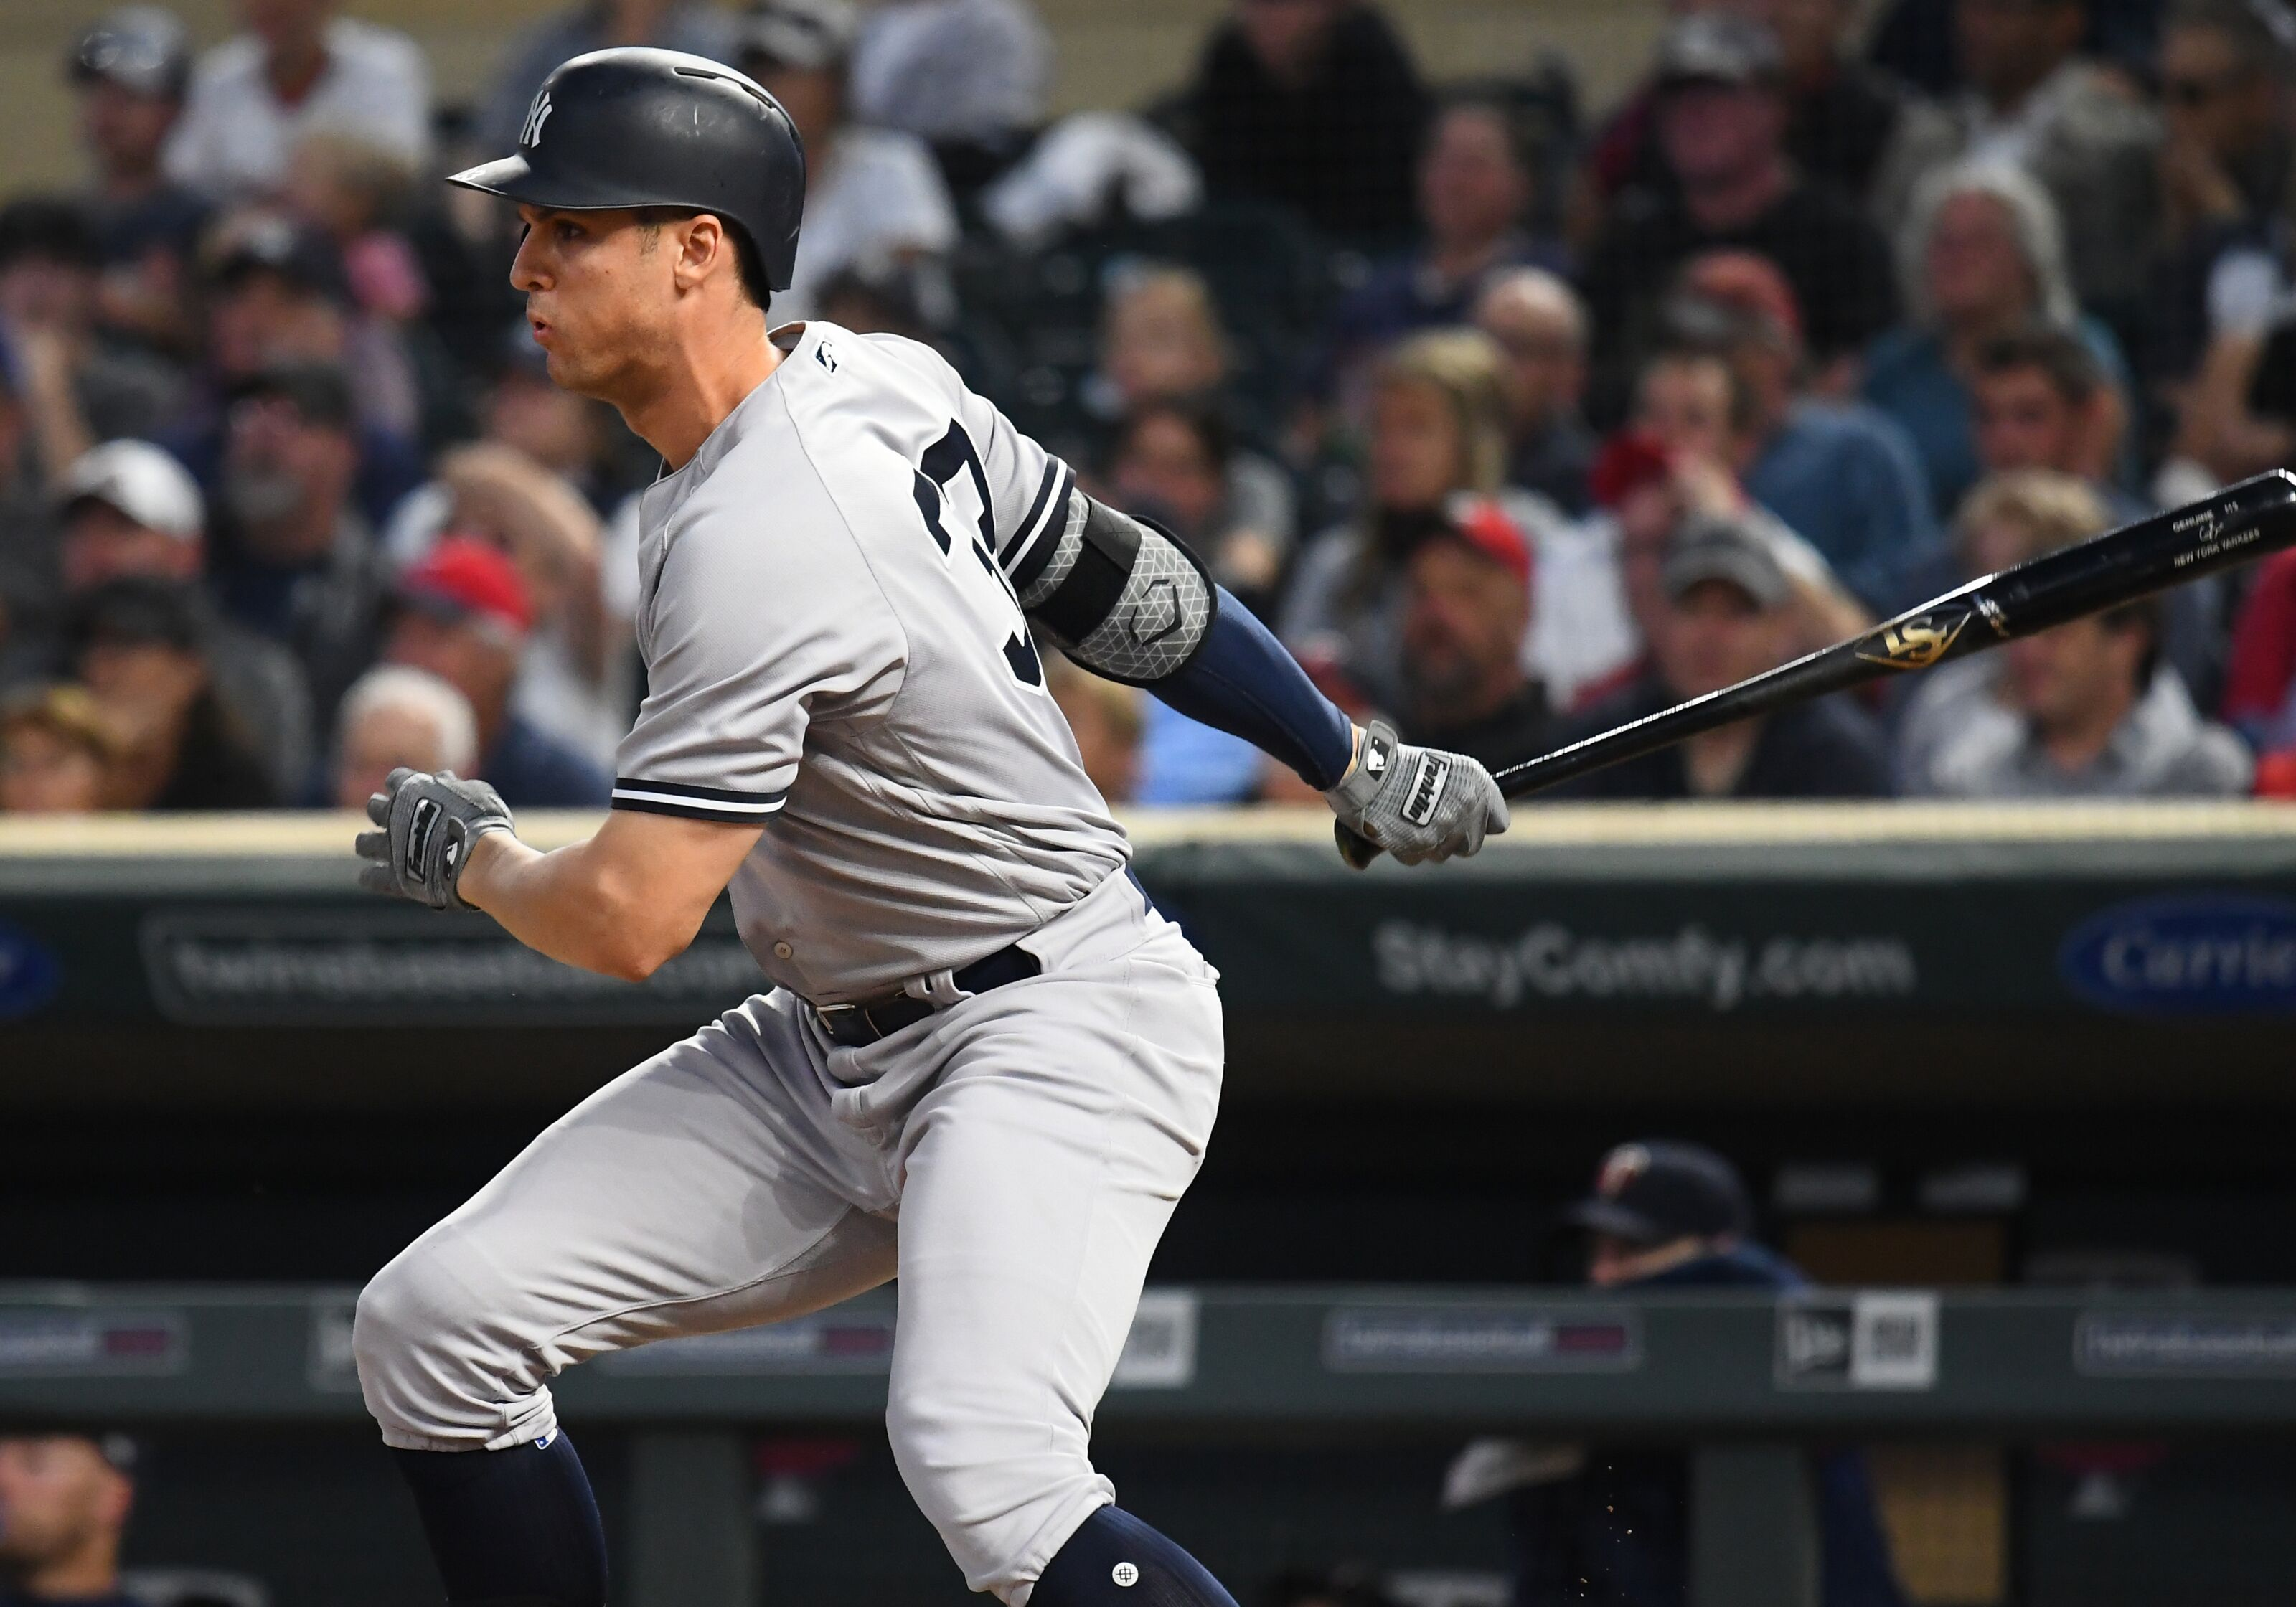 Yankees may look to trade Greg Bird or Luke Voit before Opening Day